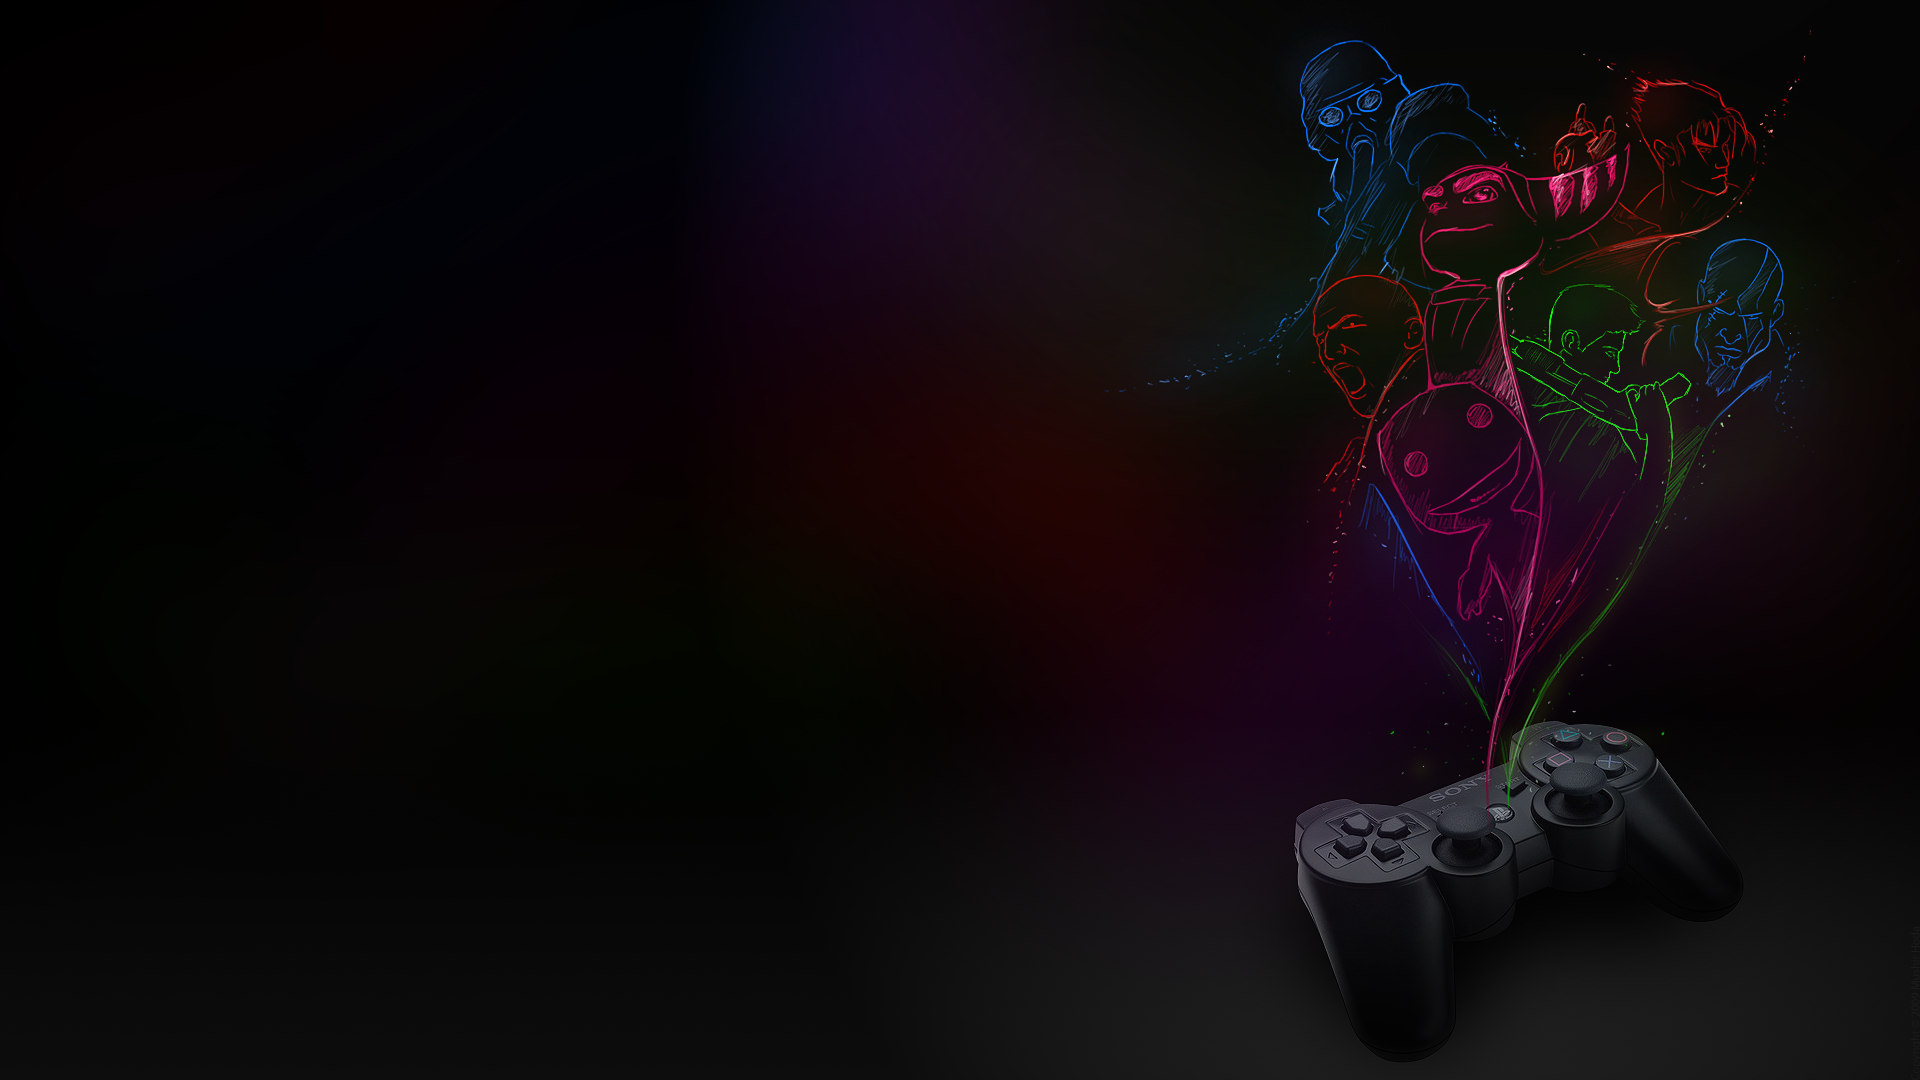 Playstation Wallpapers 1920x1080